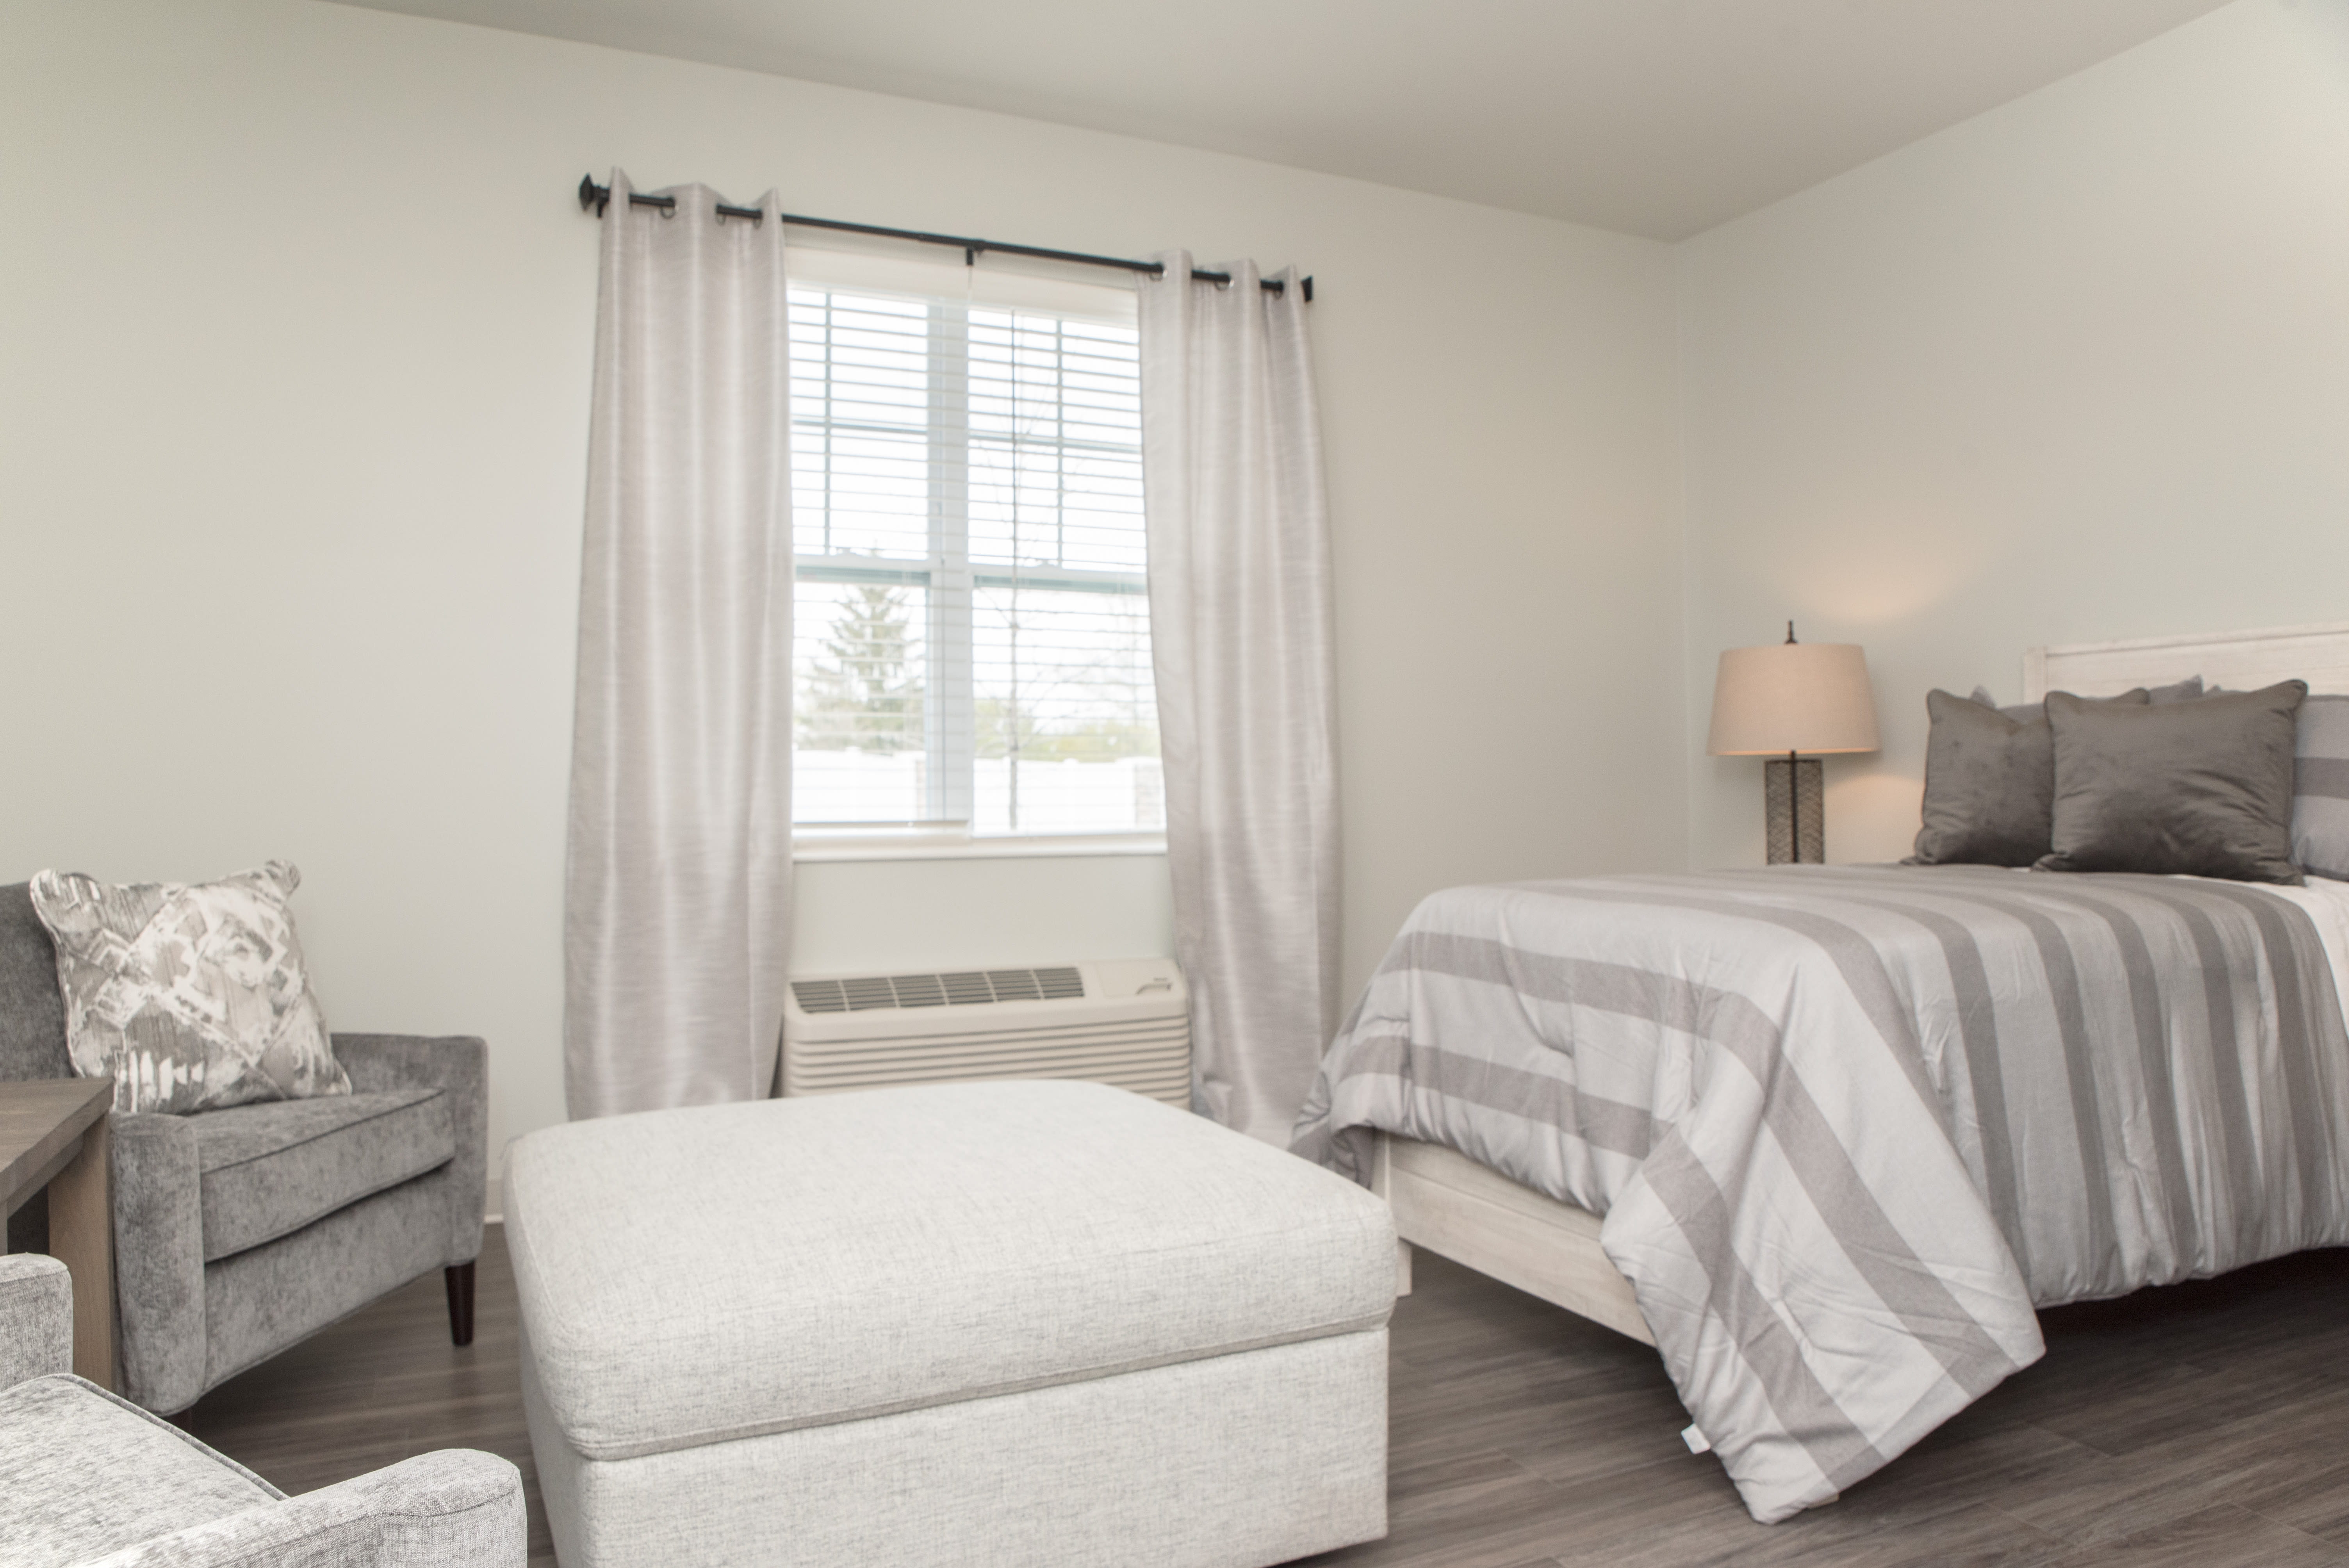 Bedroom with window at Cooper Trail Senior Living in Bardstown, Kentucky